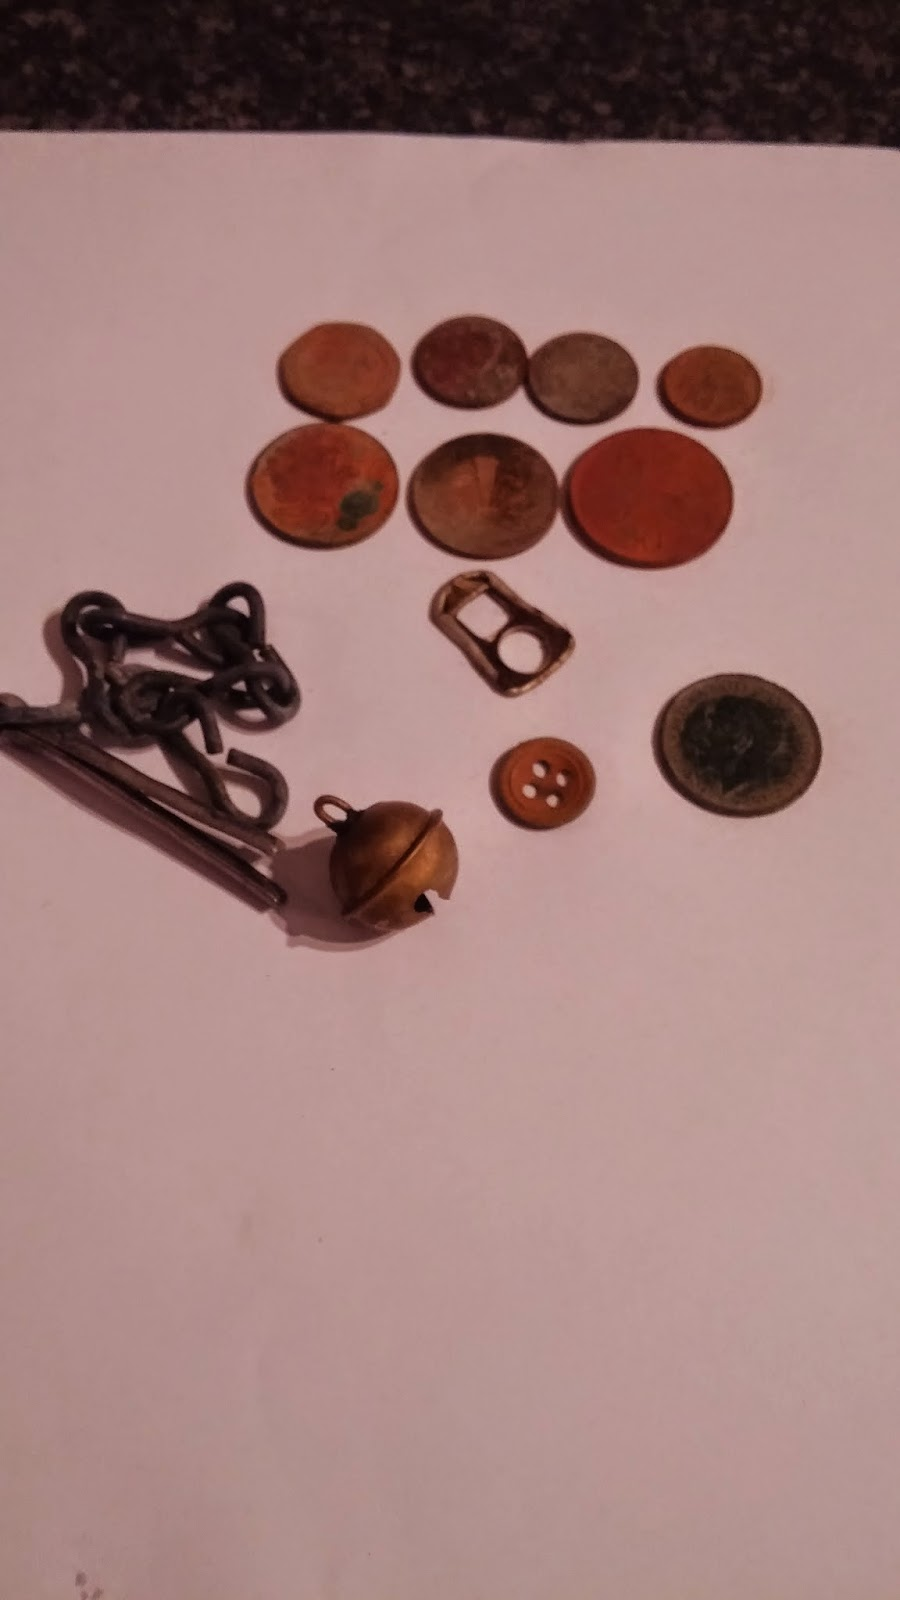 a photo of my metal detecting finds.